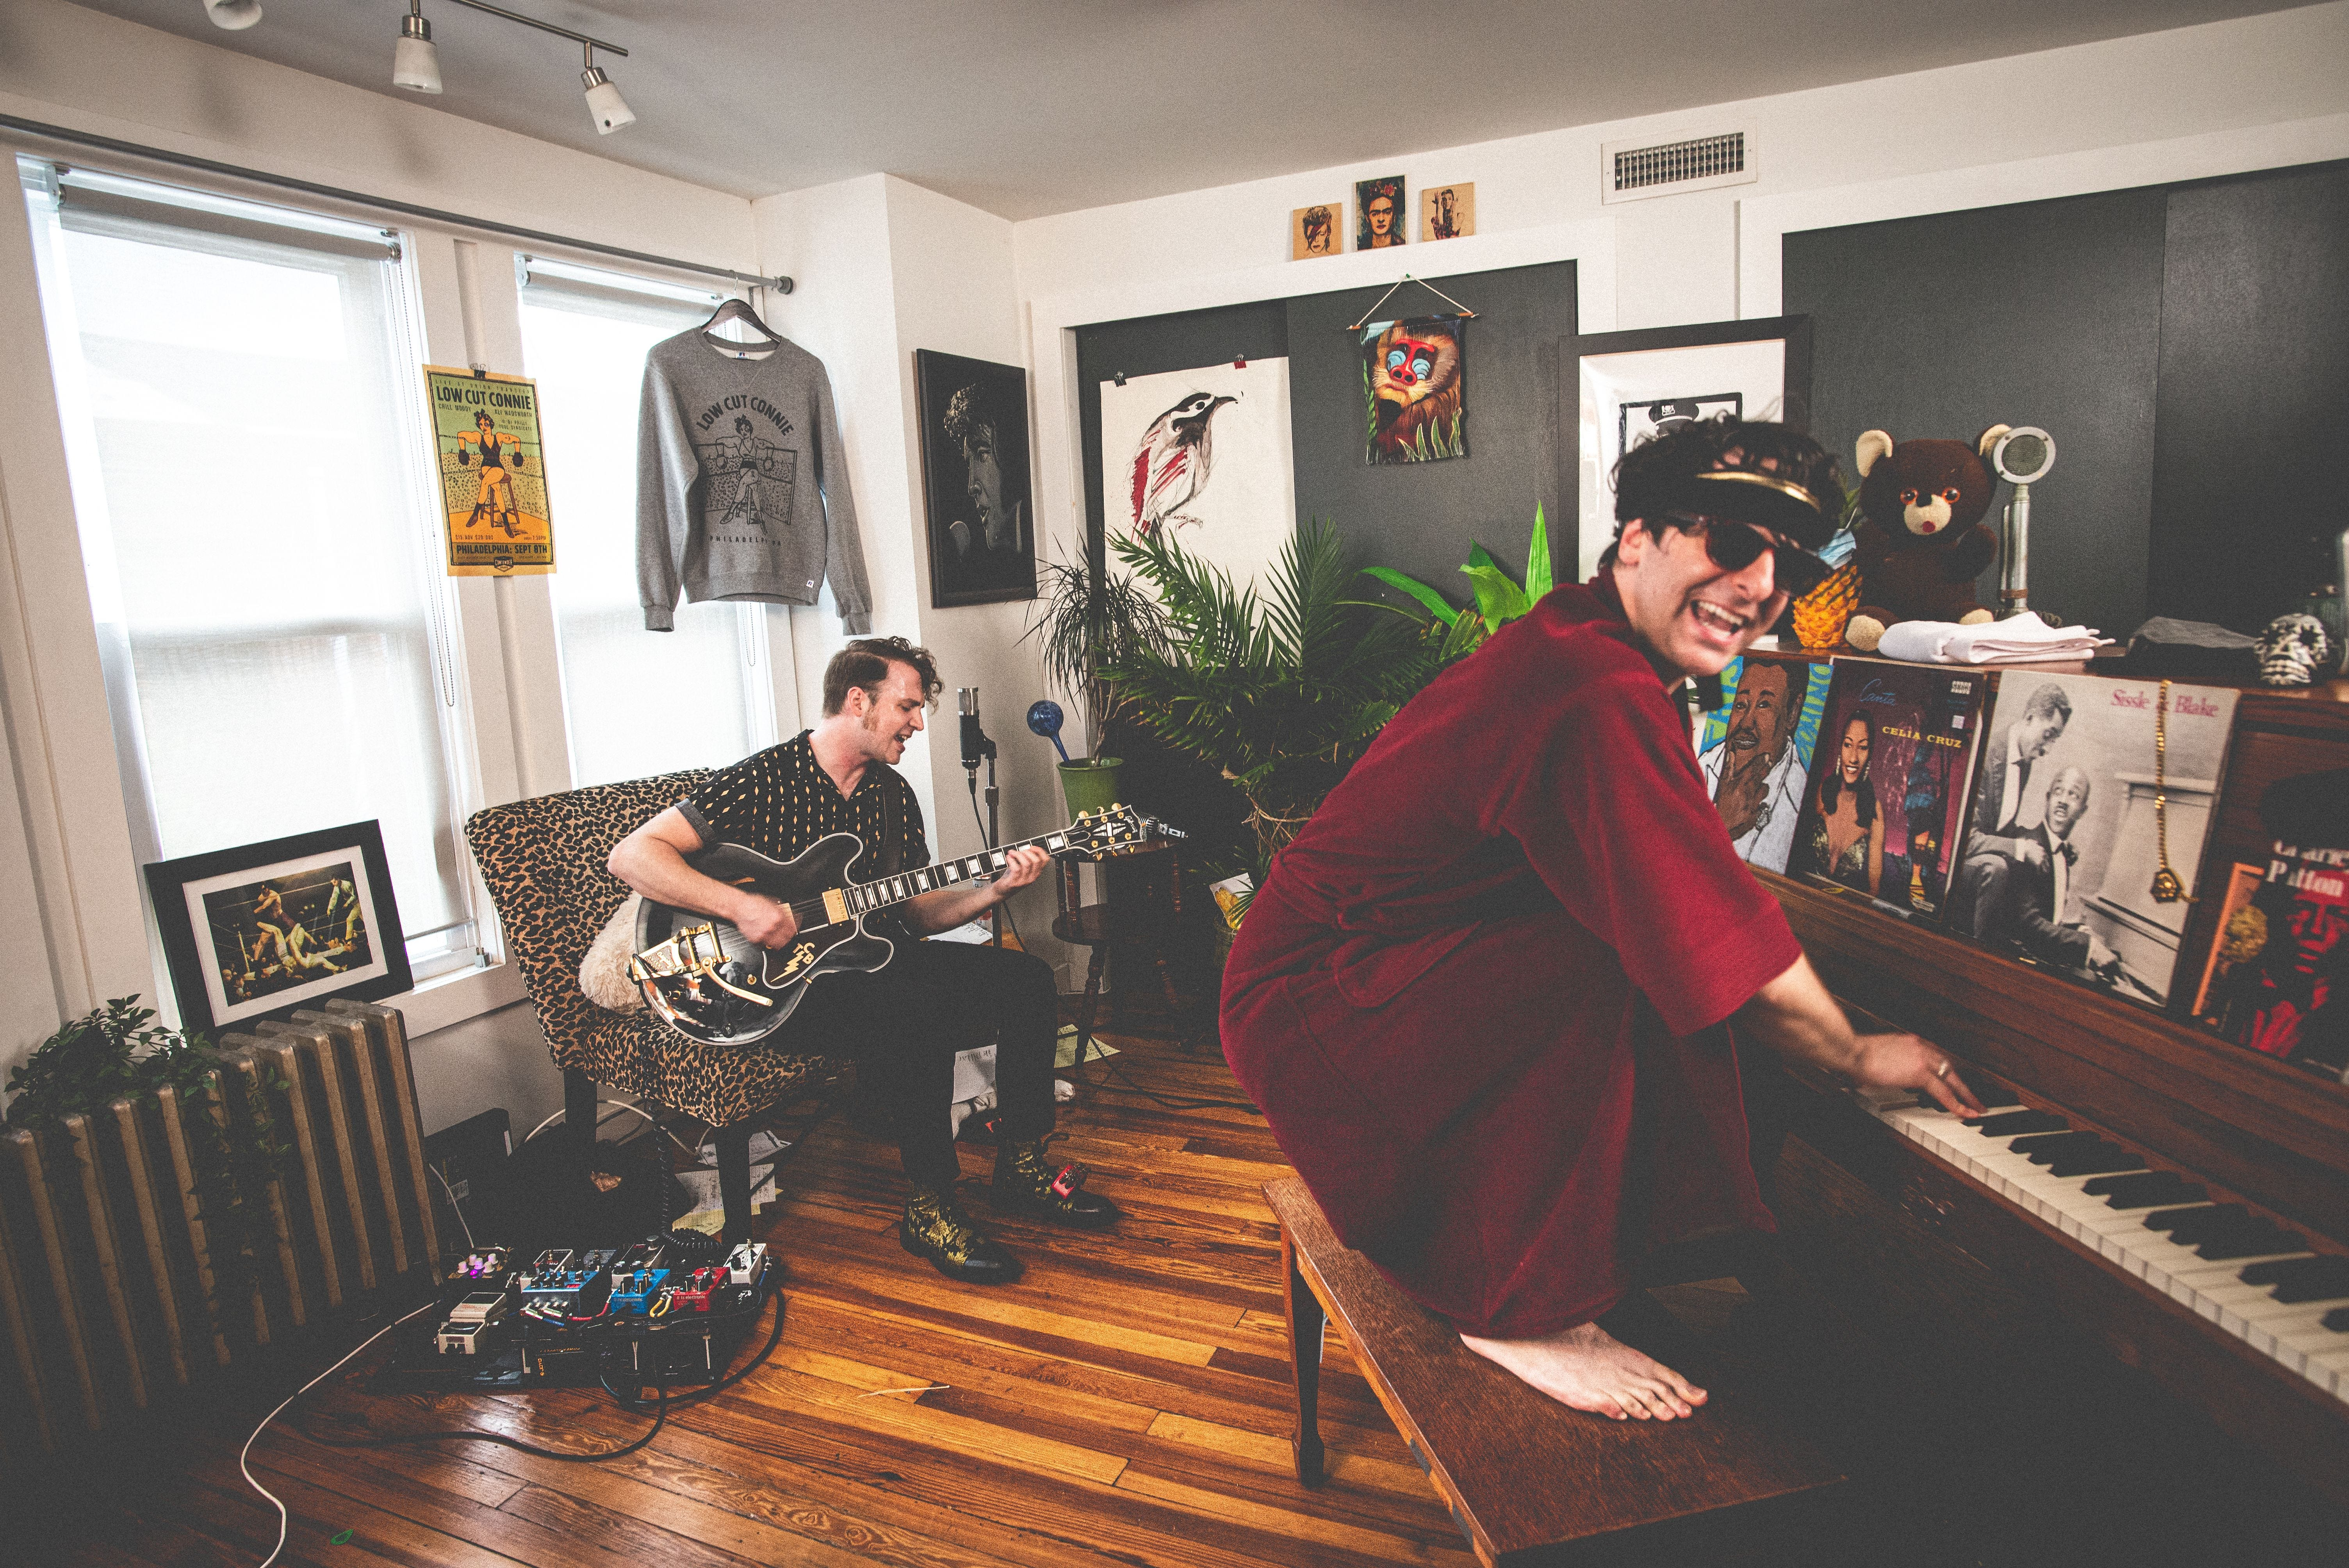 How Low Cut Connie guitarist, formerly of Delaware, co-created 'Tough Cookies' web show